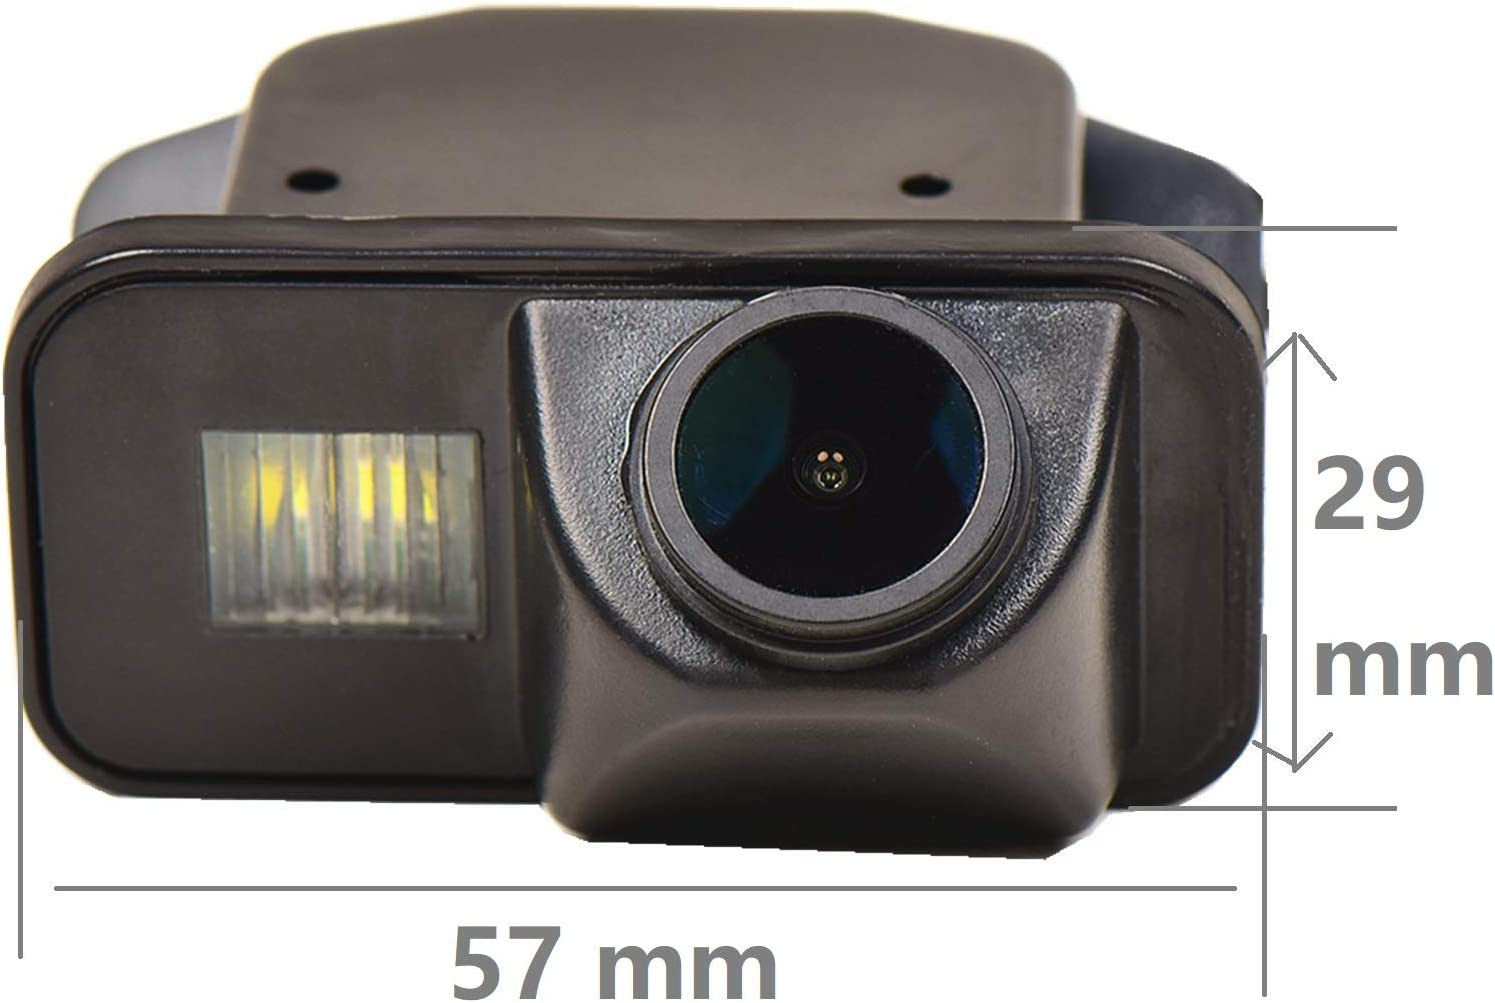 Rear Reversing Backup Camera Rearview License Plate Camera Night Vision Ip68 Waterproof for Toyota Corolla Auris Avensis T25 T27